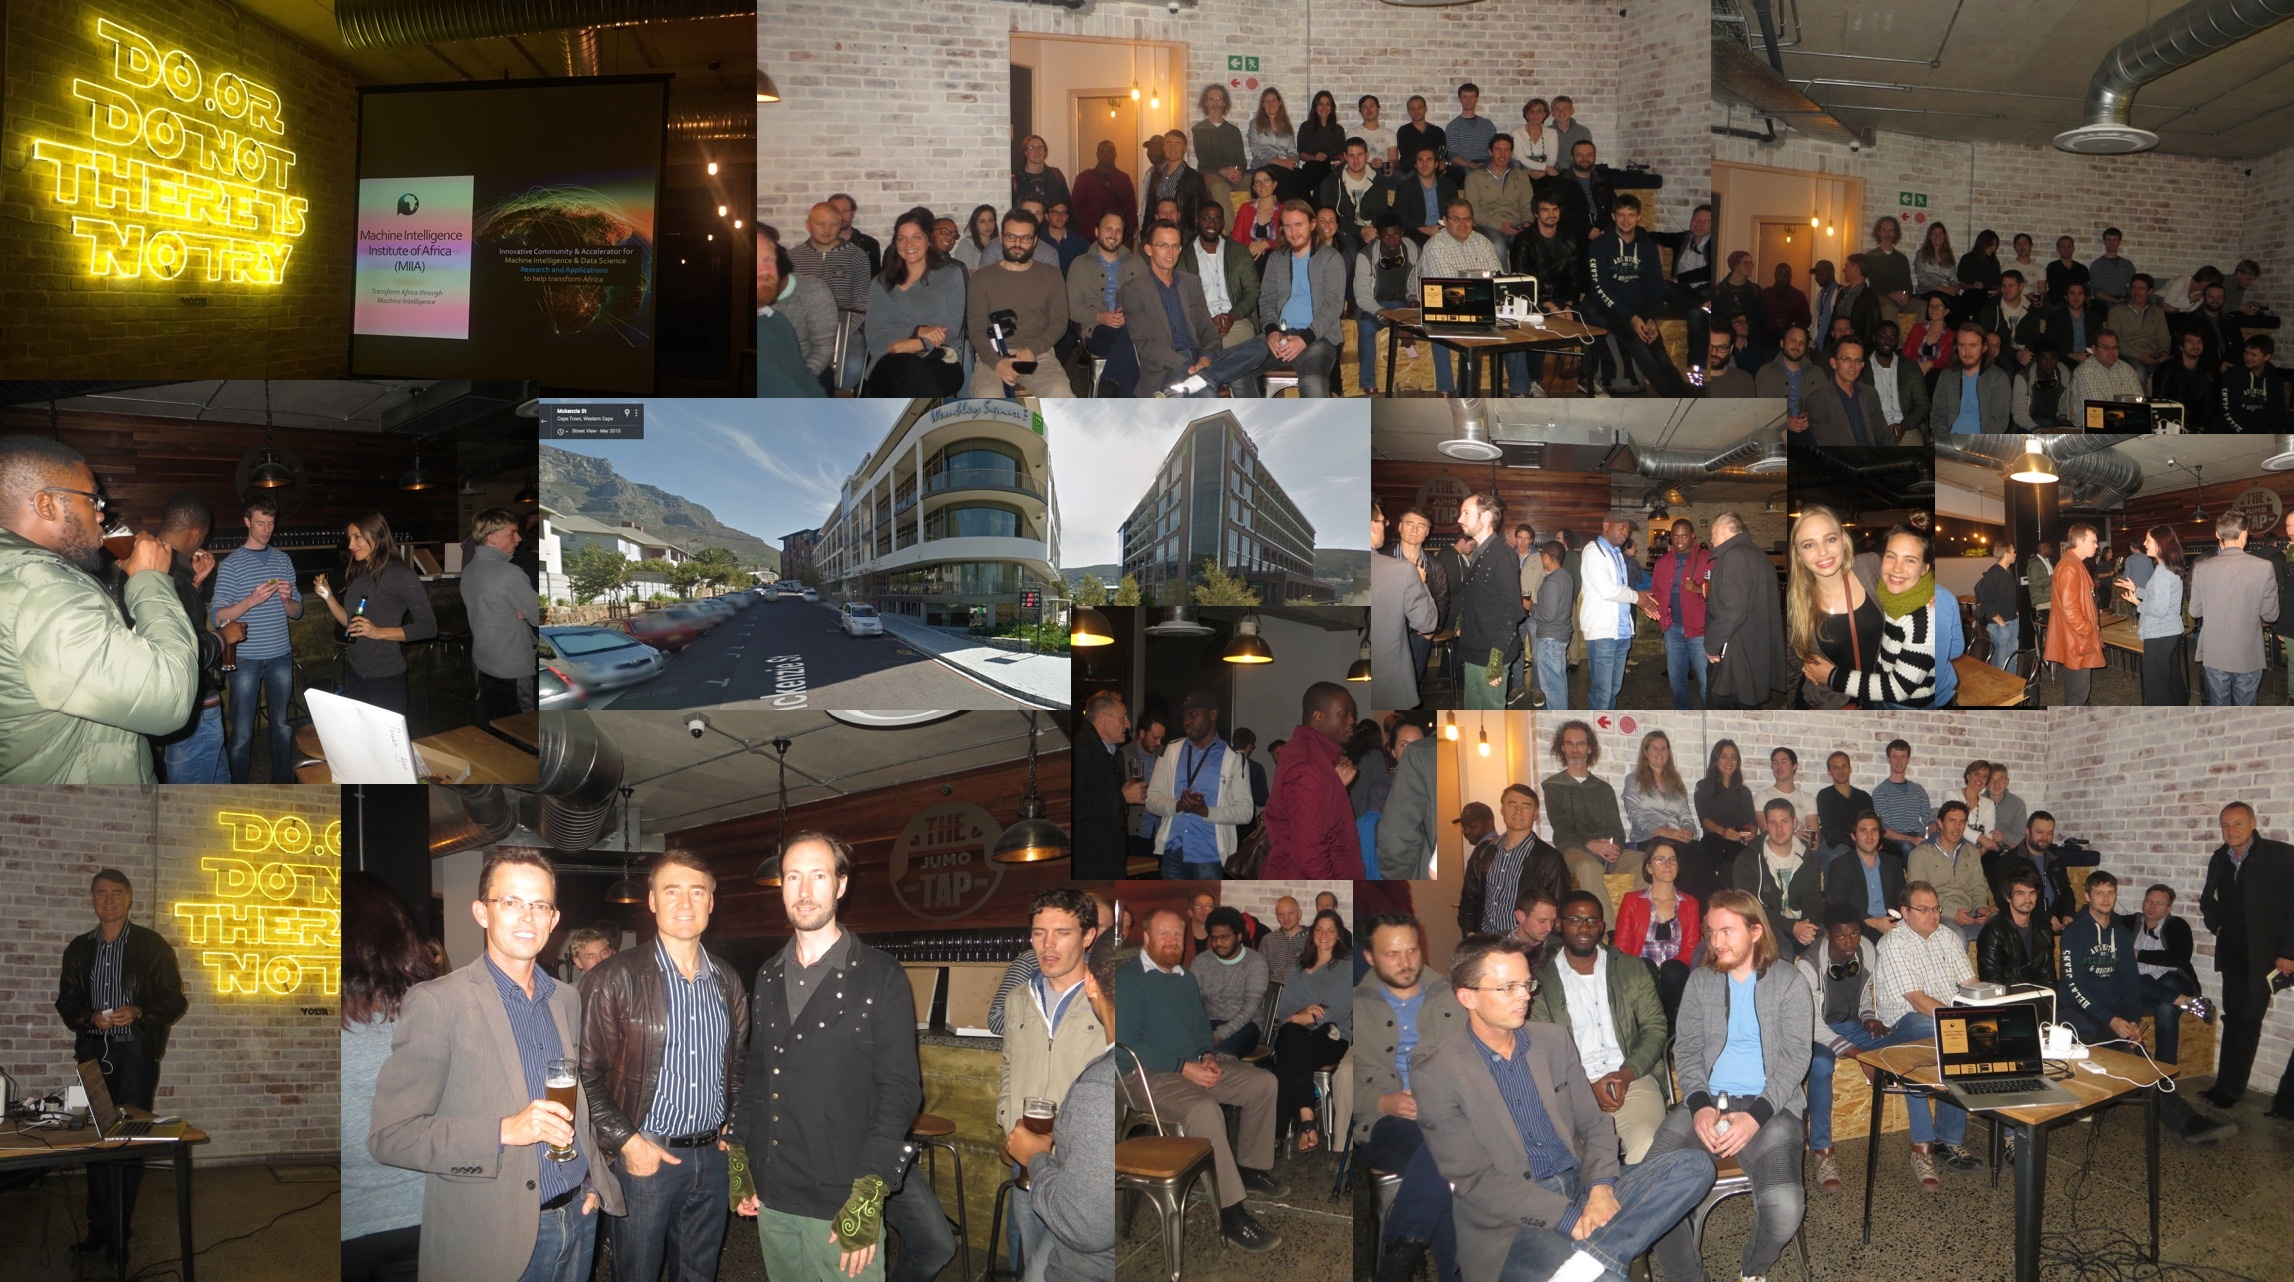 Follow-up on an awesome MIIA Meetup in Cape Town!